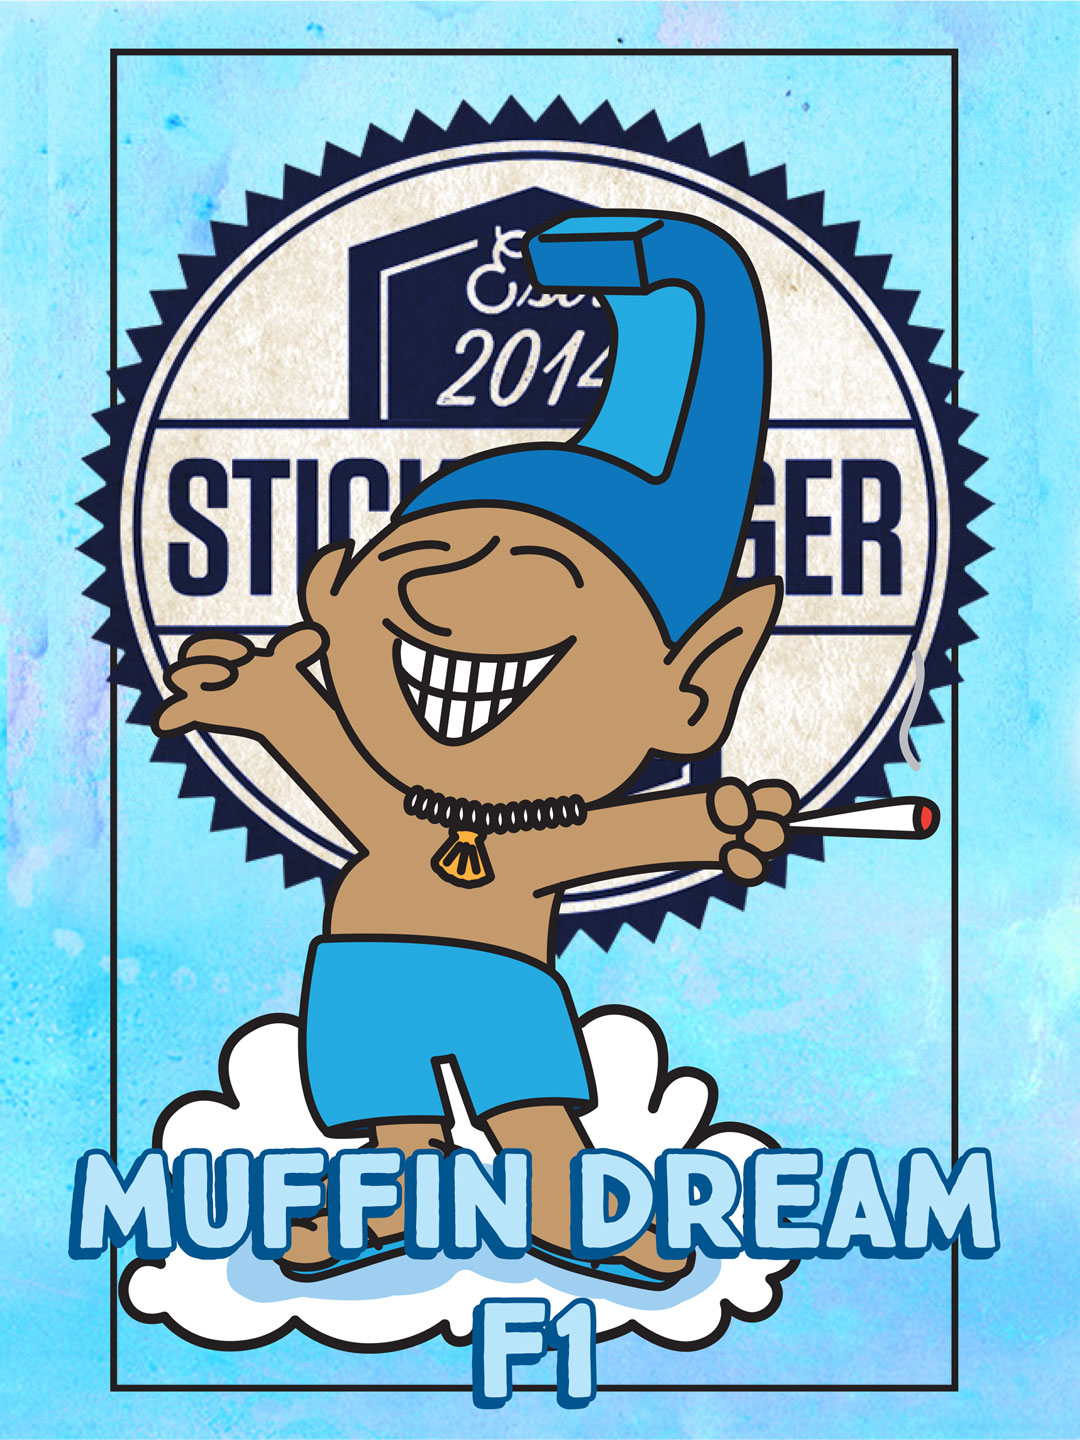 Sticky-Fingers-Seeds-Muffin-Dream-8-poster